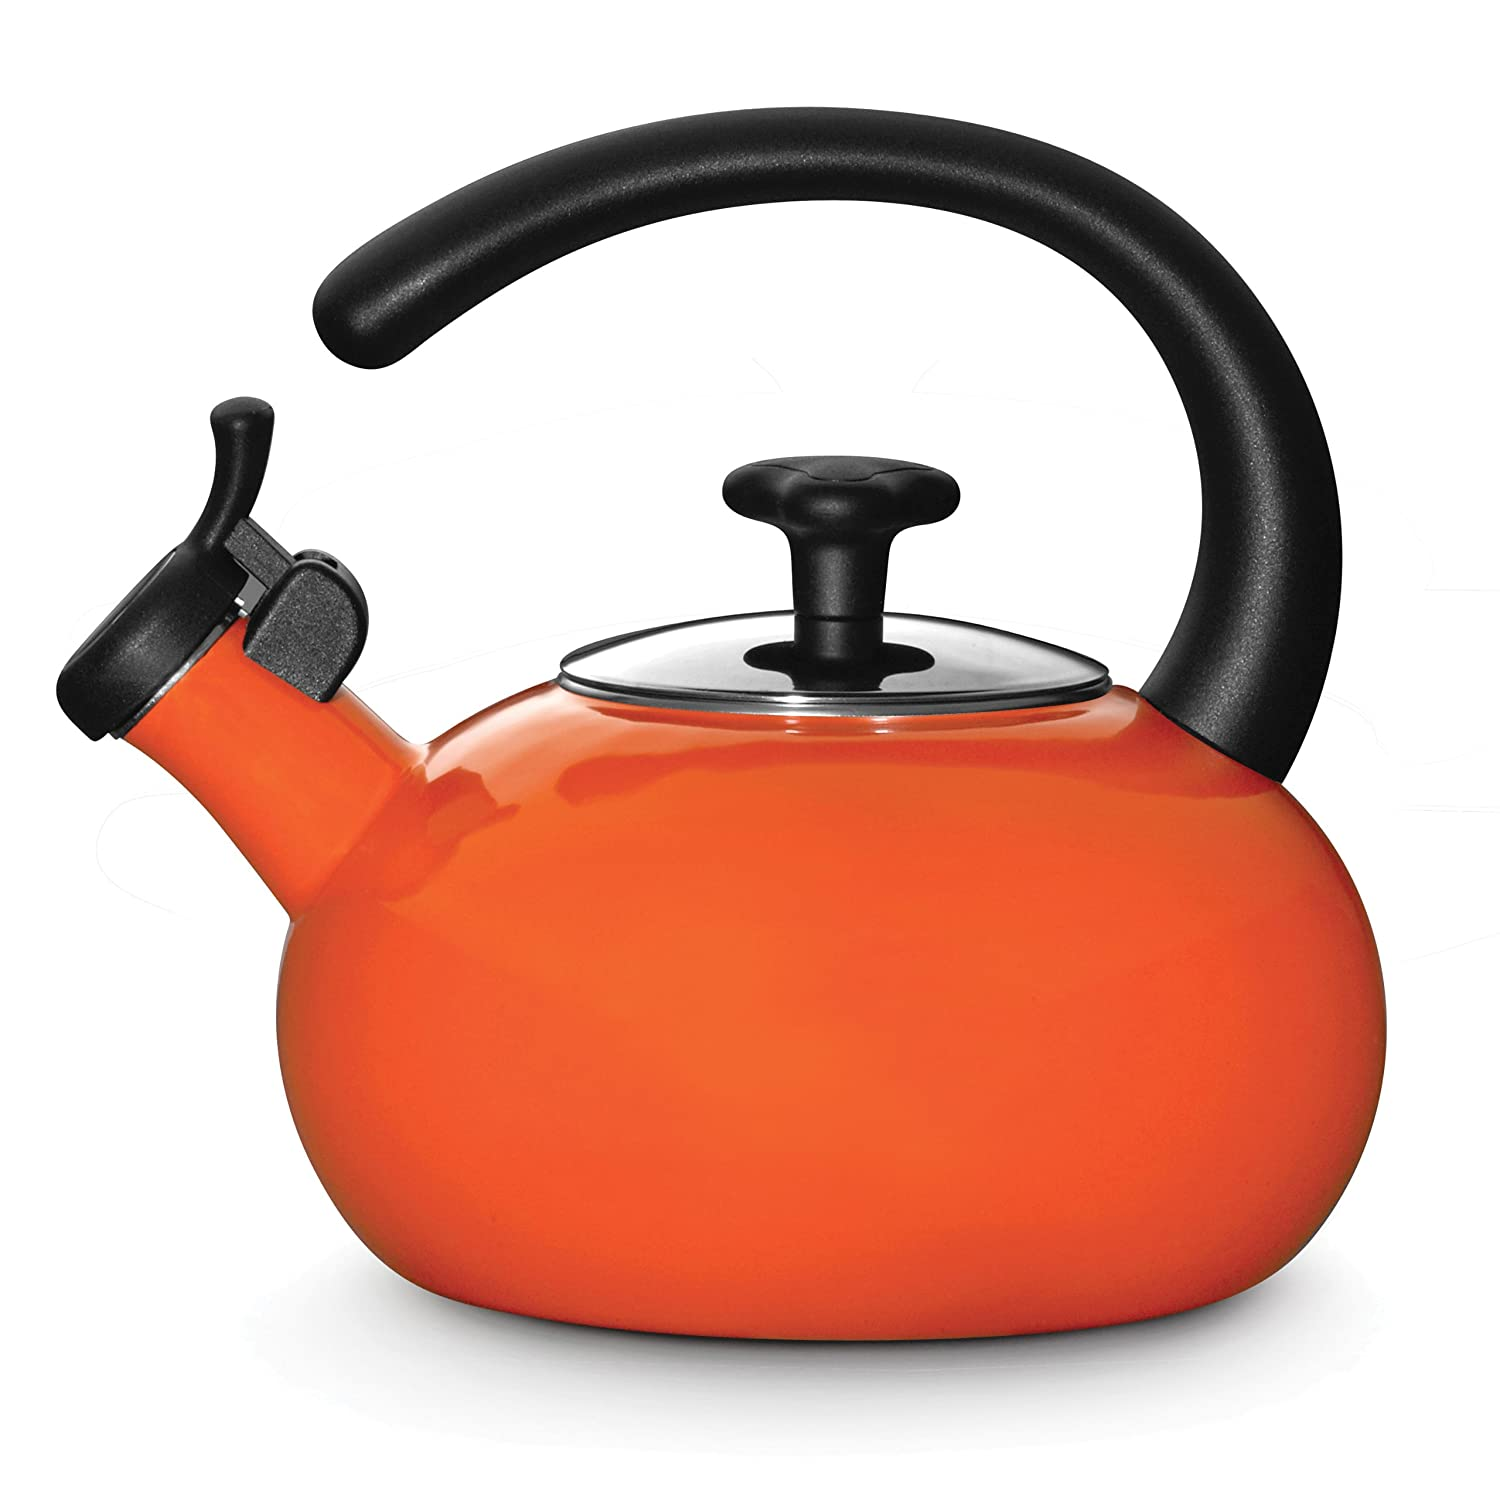 amazoncom rachael ray teakettles quart whistling orange  - amazoncom rachael ray teakettles quart whistling orange tea kettlekitchen  dining